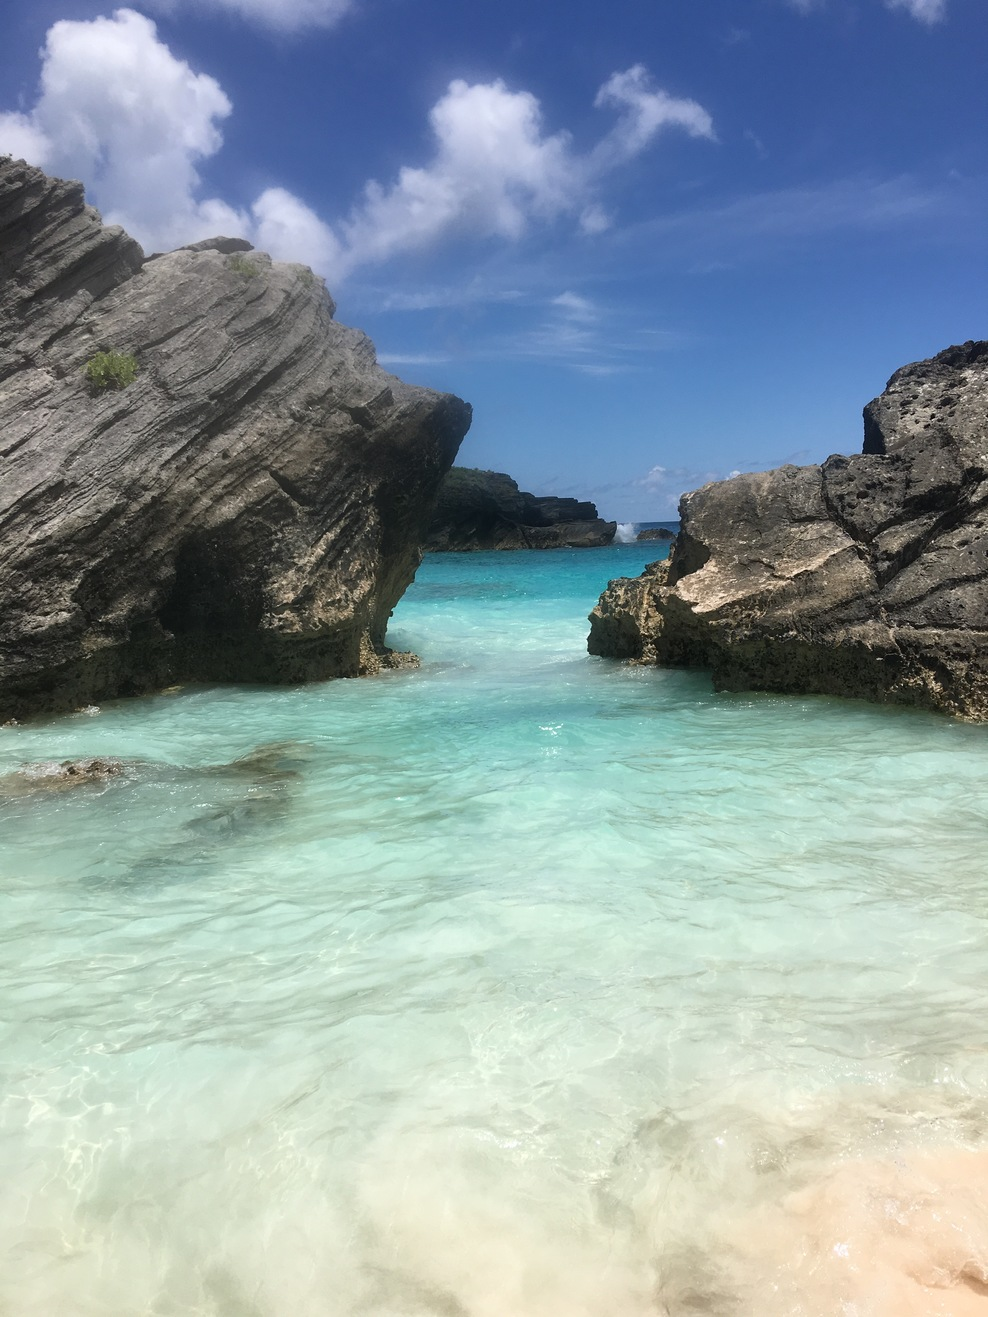 I took this with my iPhone! Horseshoe bay was incredible!